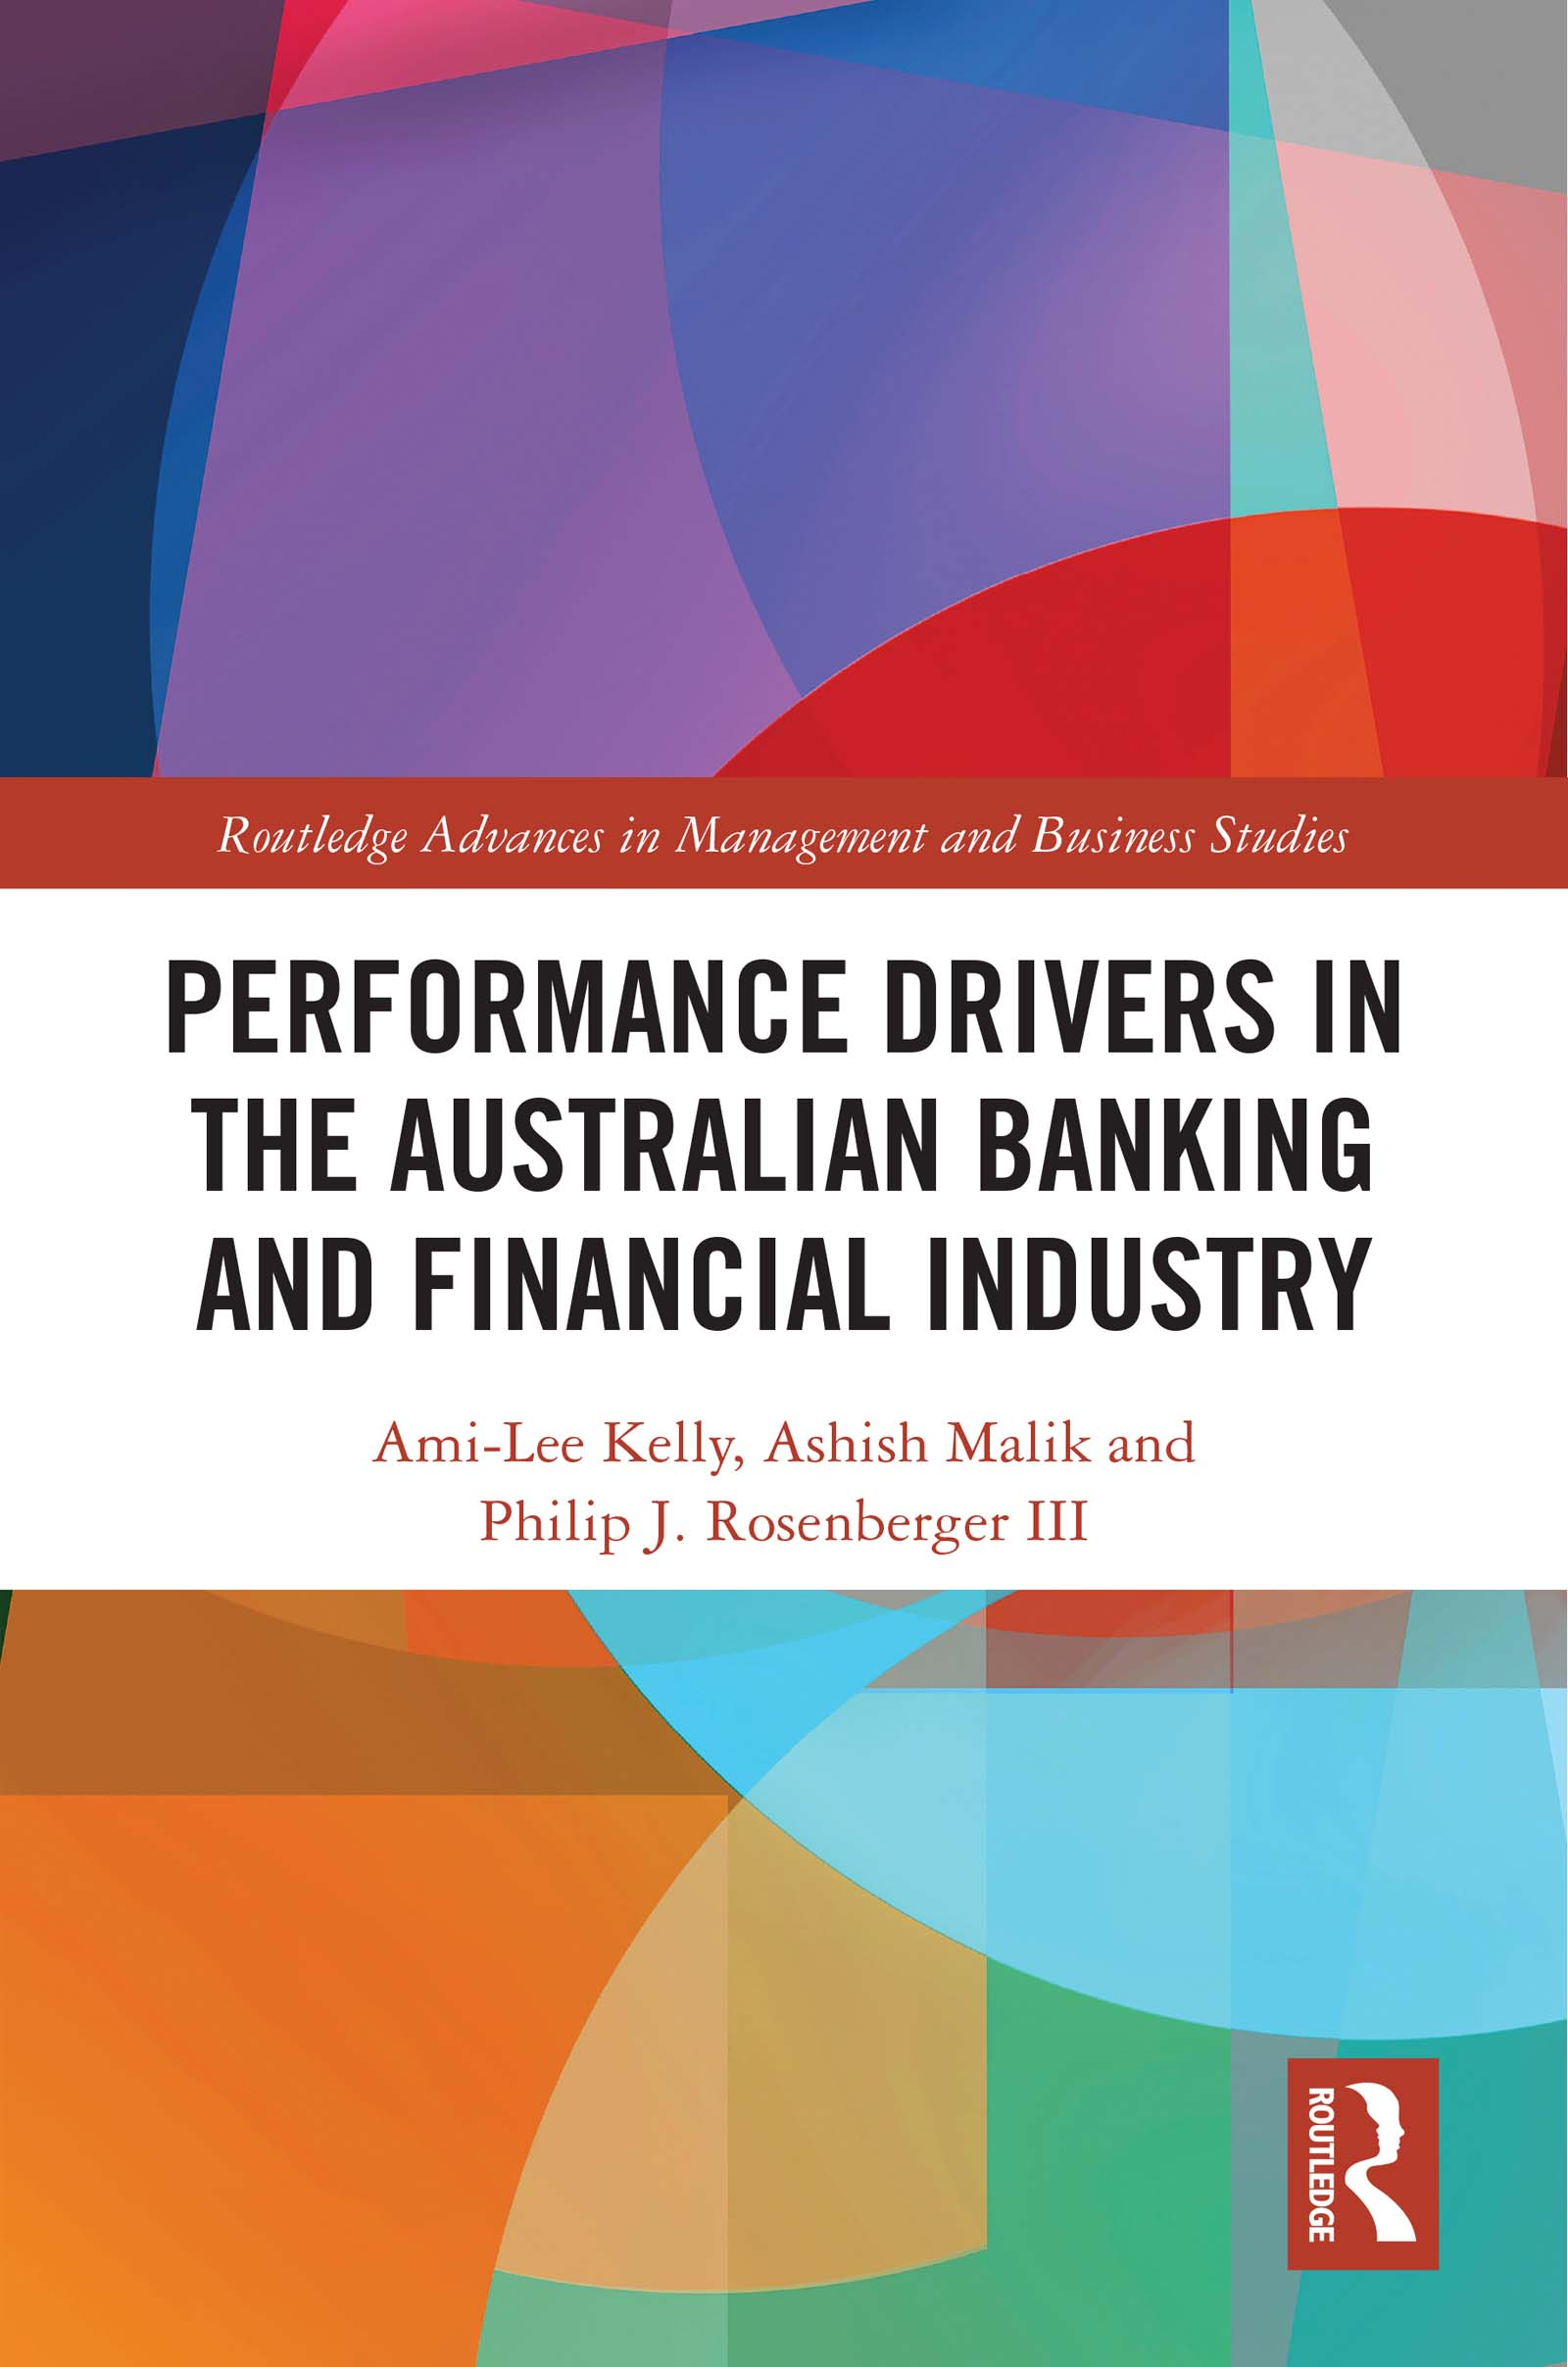 High performance in the Australian banking and financial services industry